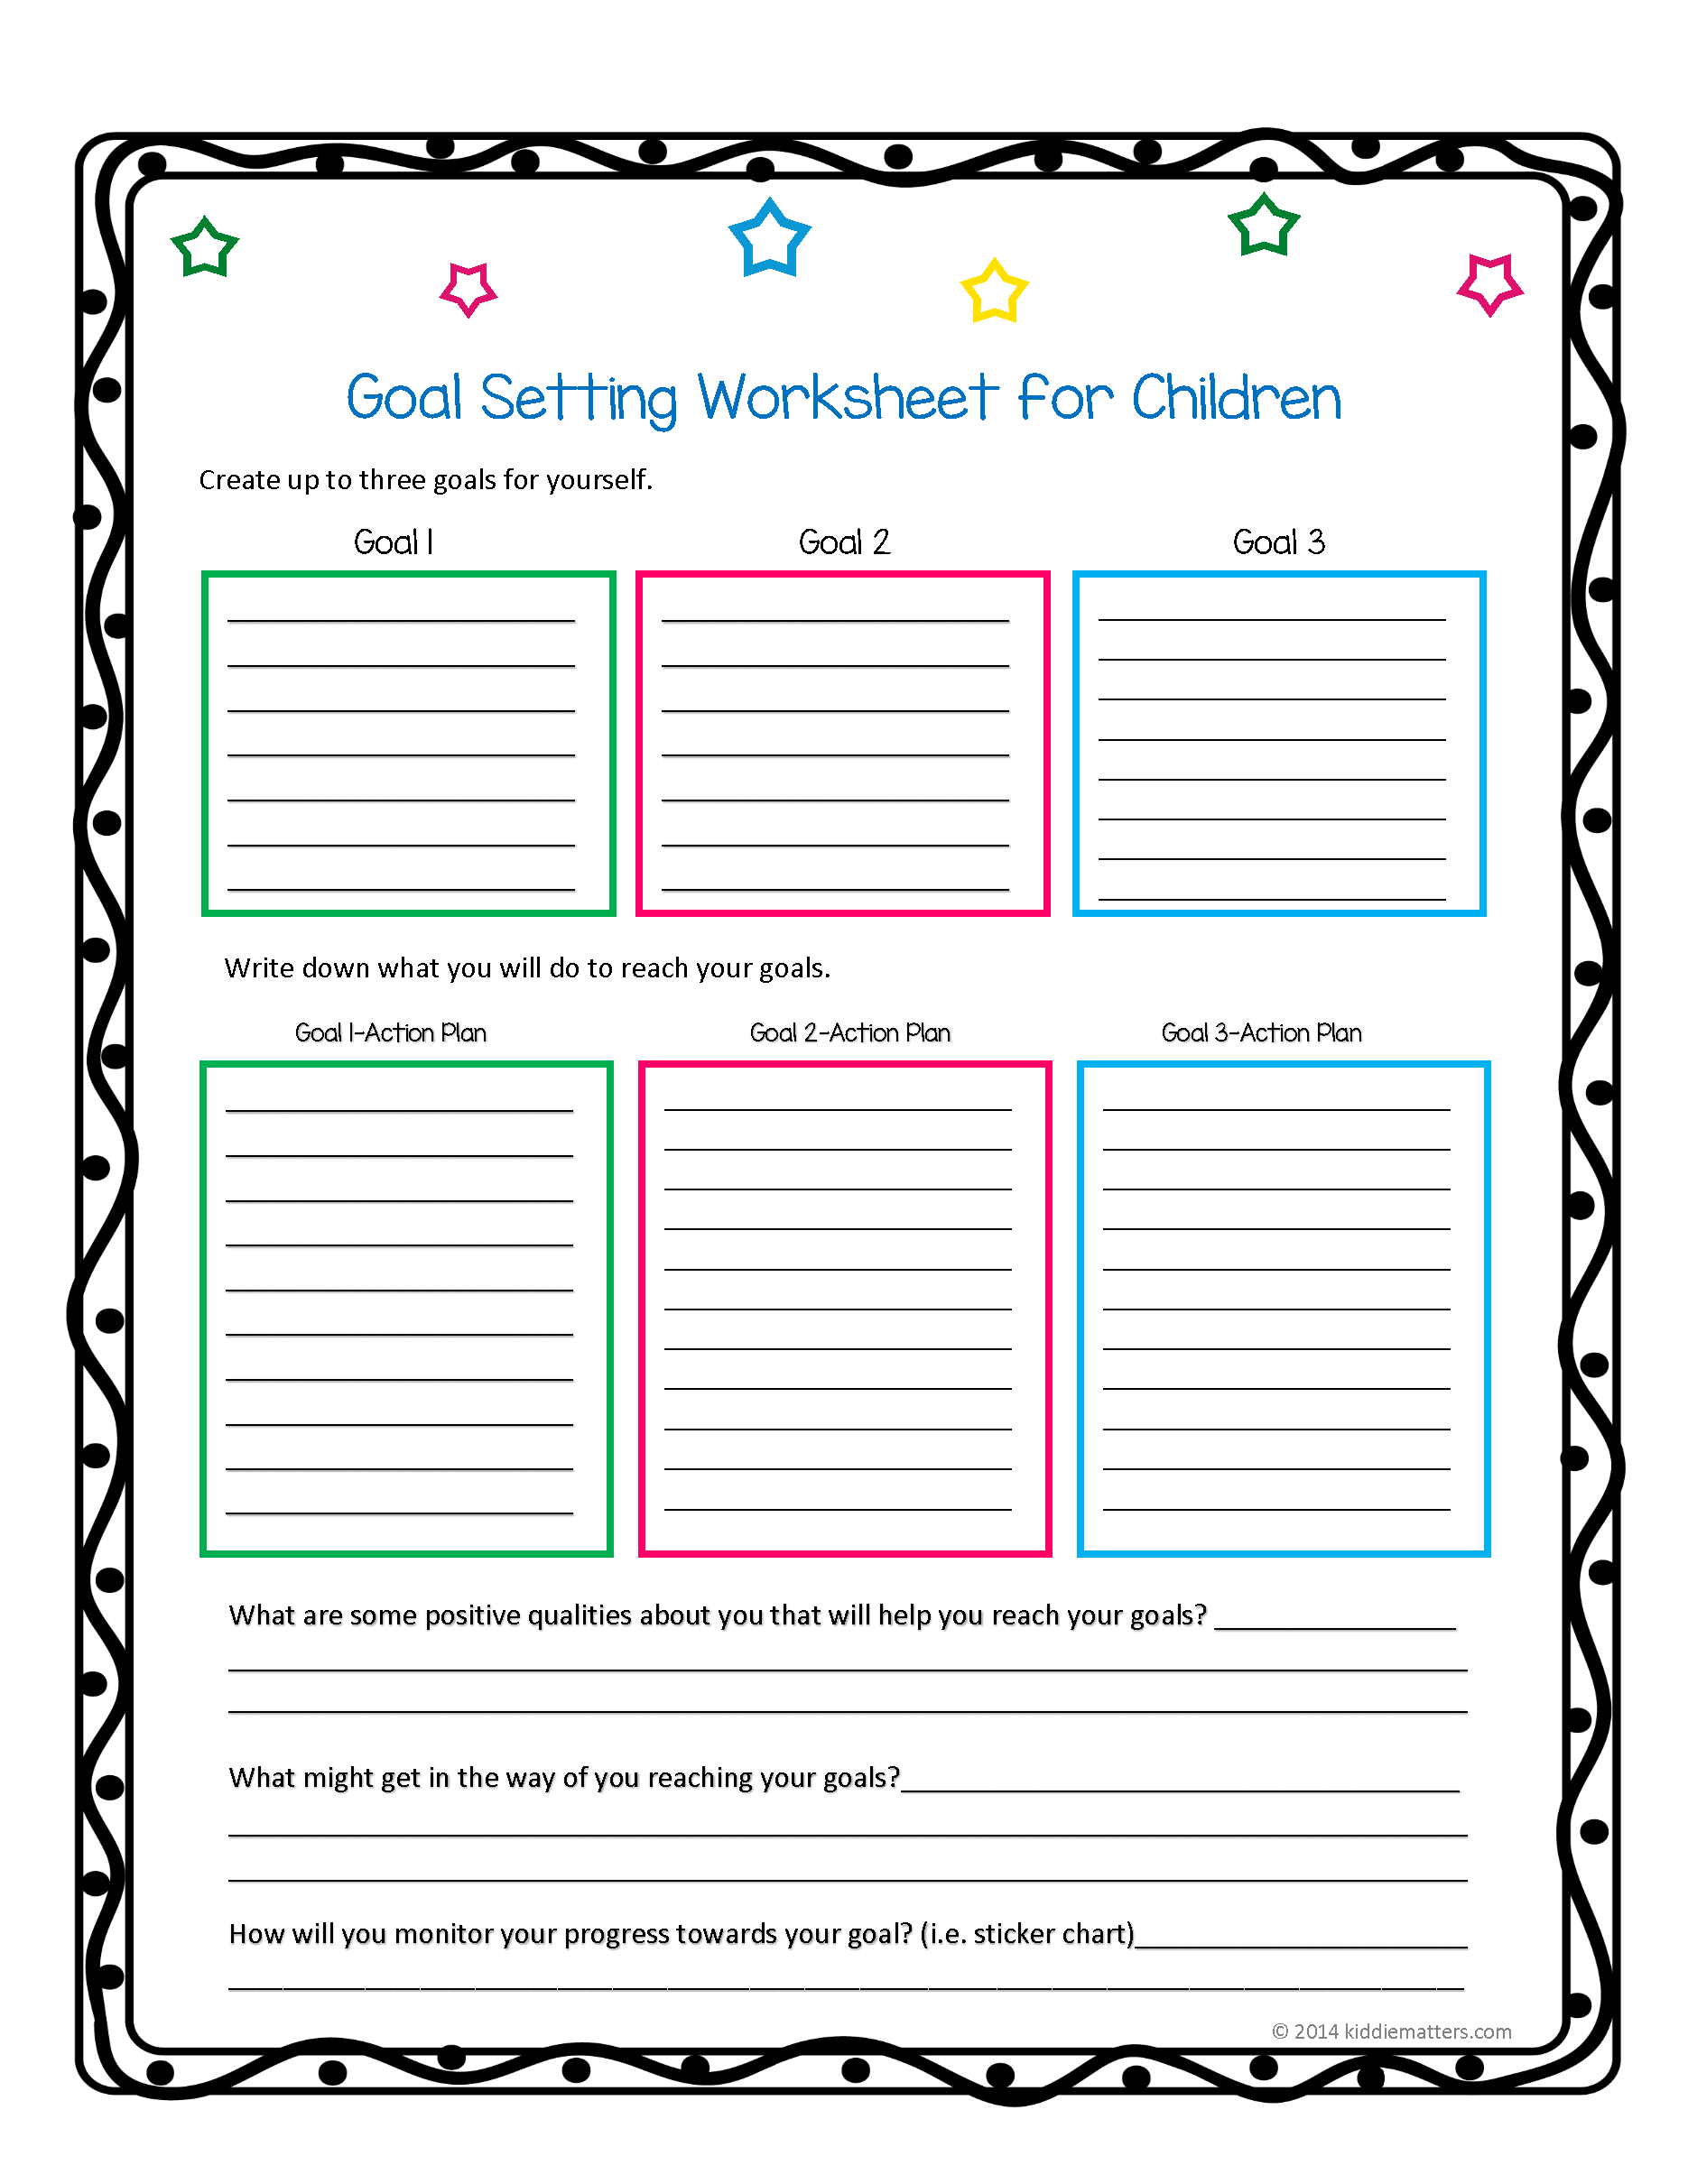 This Worksheet And Free Printable Helps Children Learn How To Set | Printable Goal Setting Worksheet For High School Students